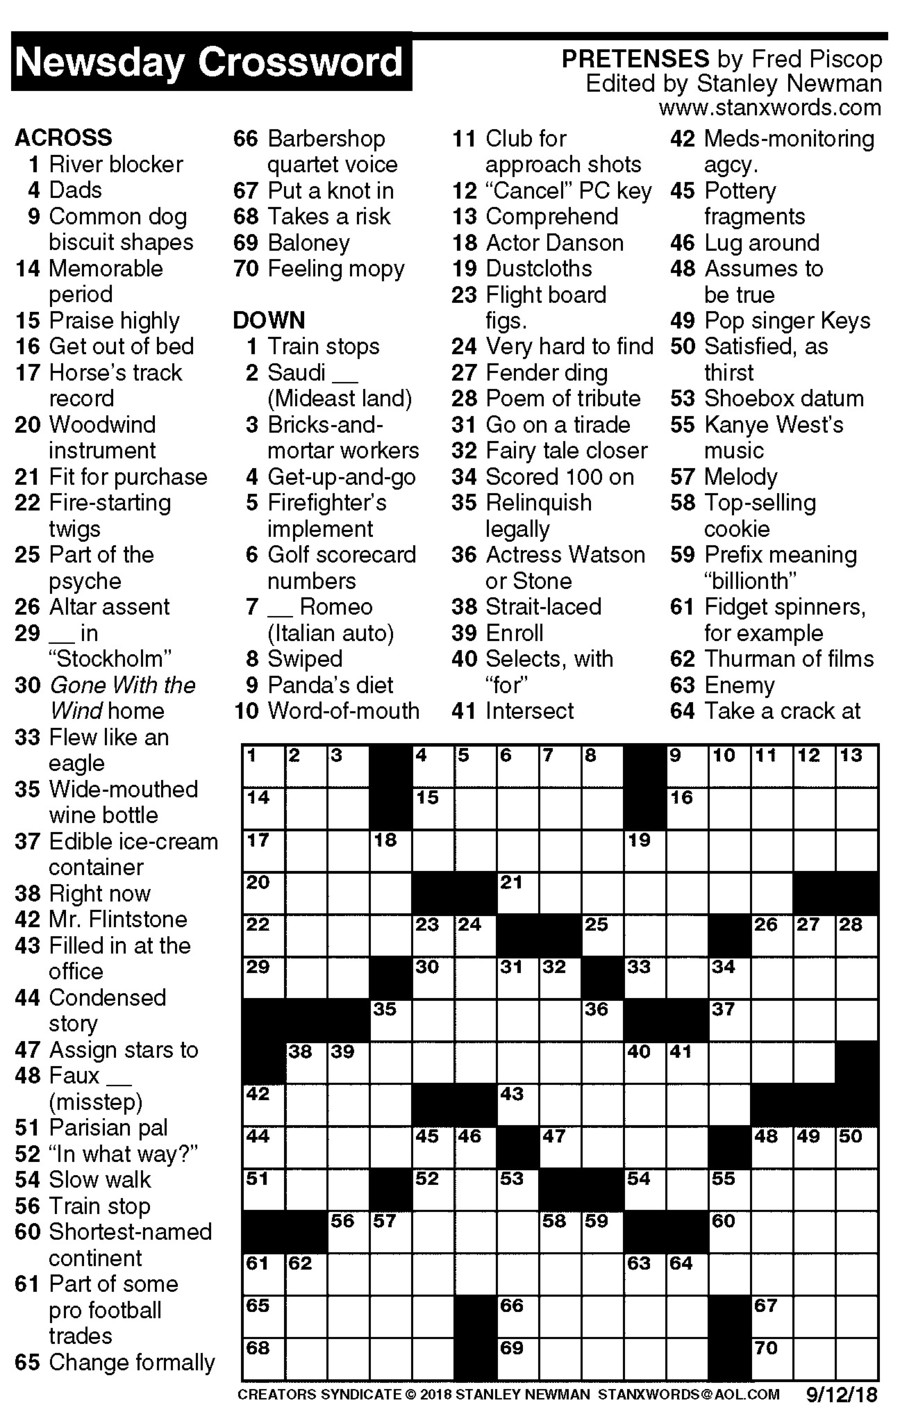 Newsday Crossword Puzzle for Sep 12, 2018